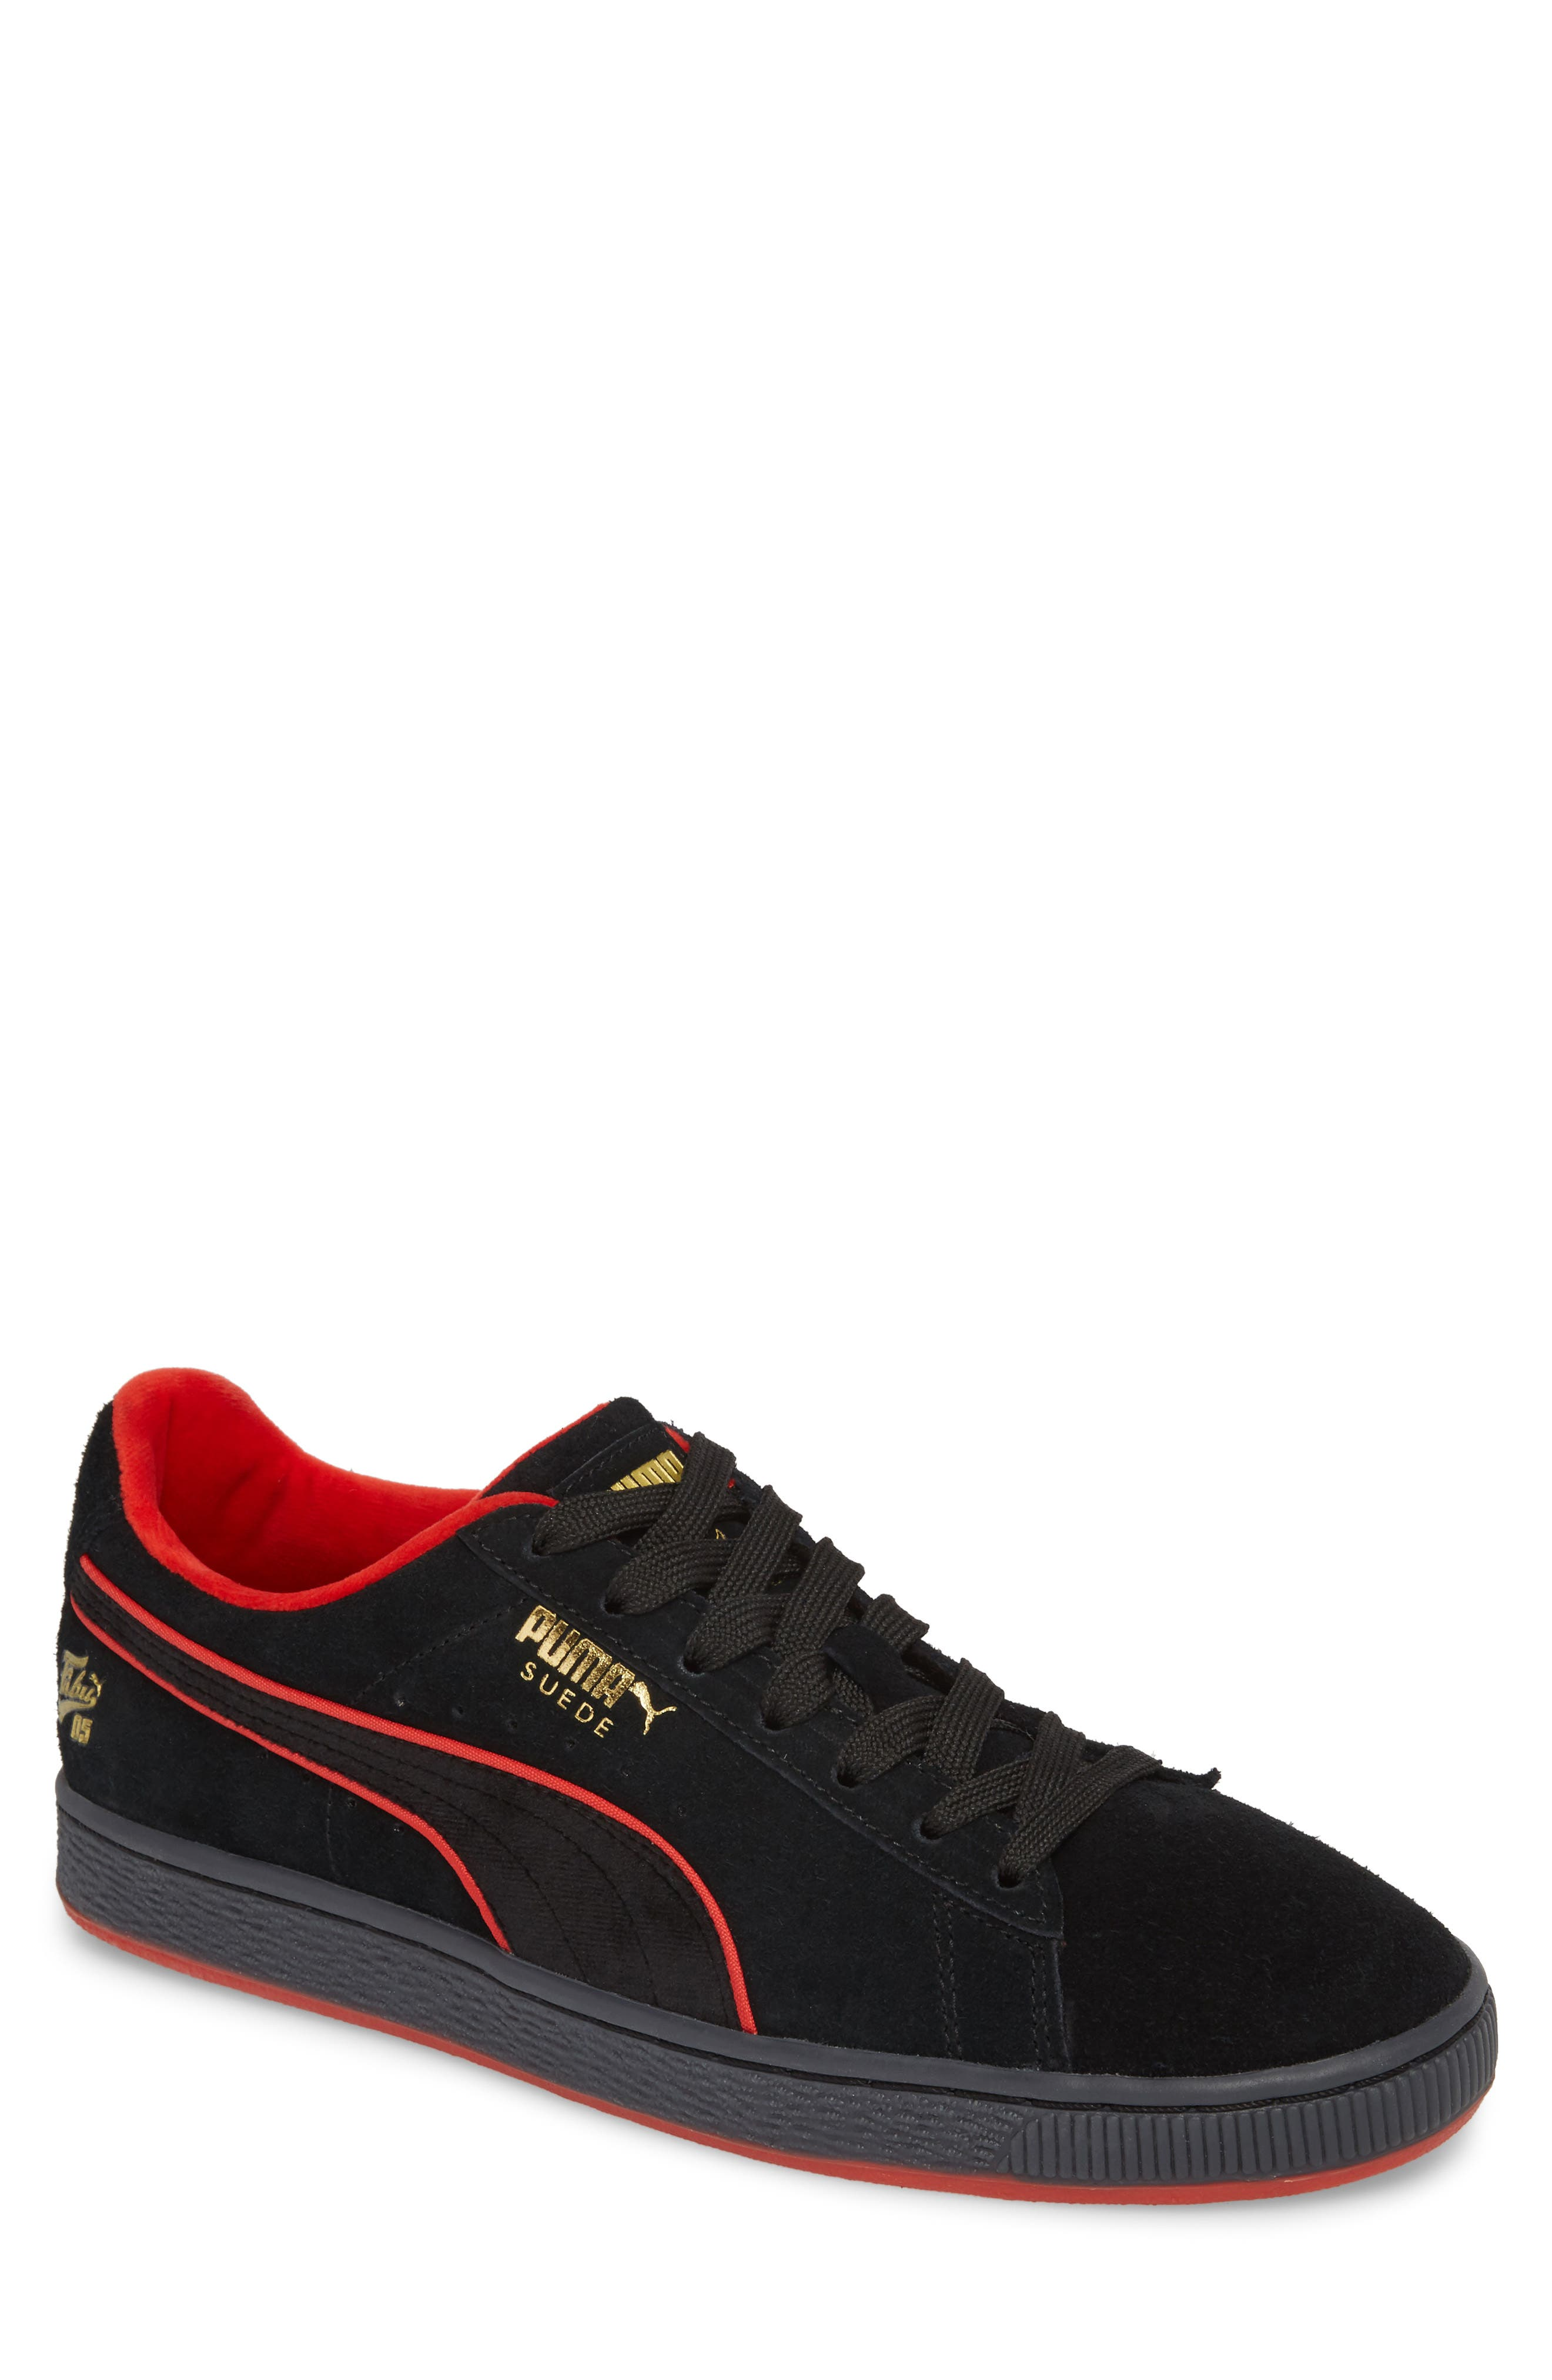 x FUBU Suede Classic Sneaker,                             Main thumbnail 1, color,